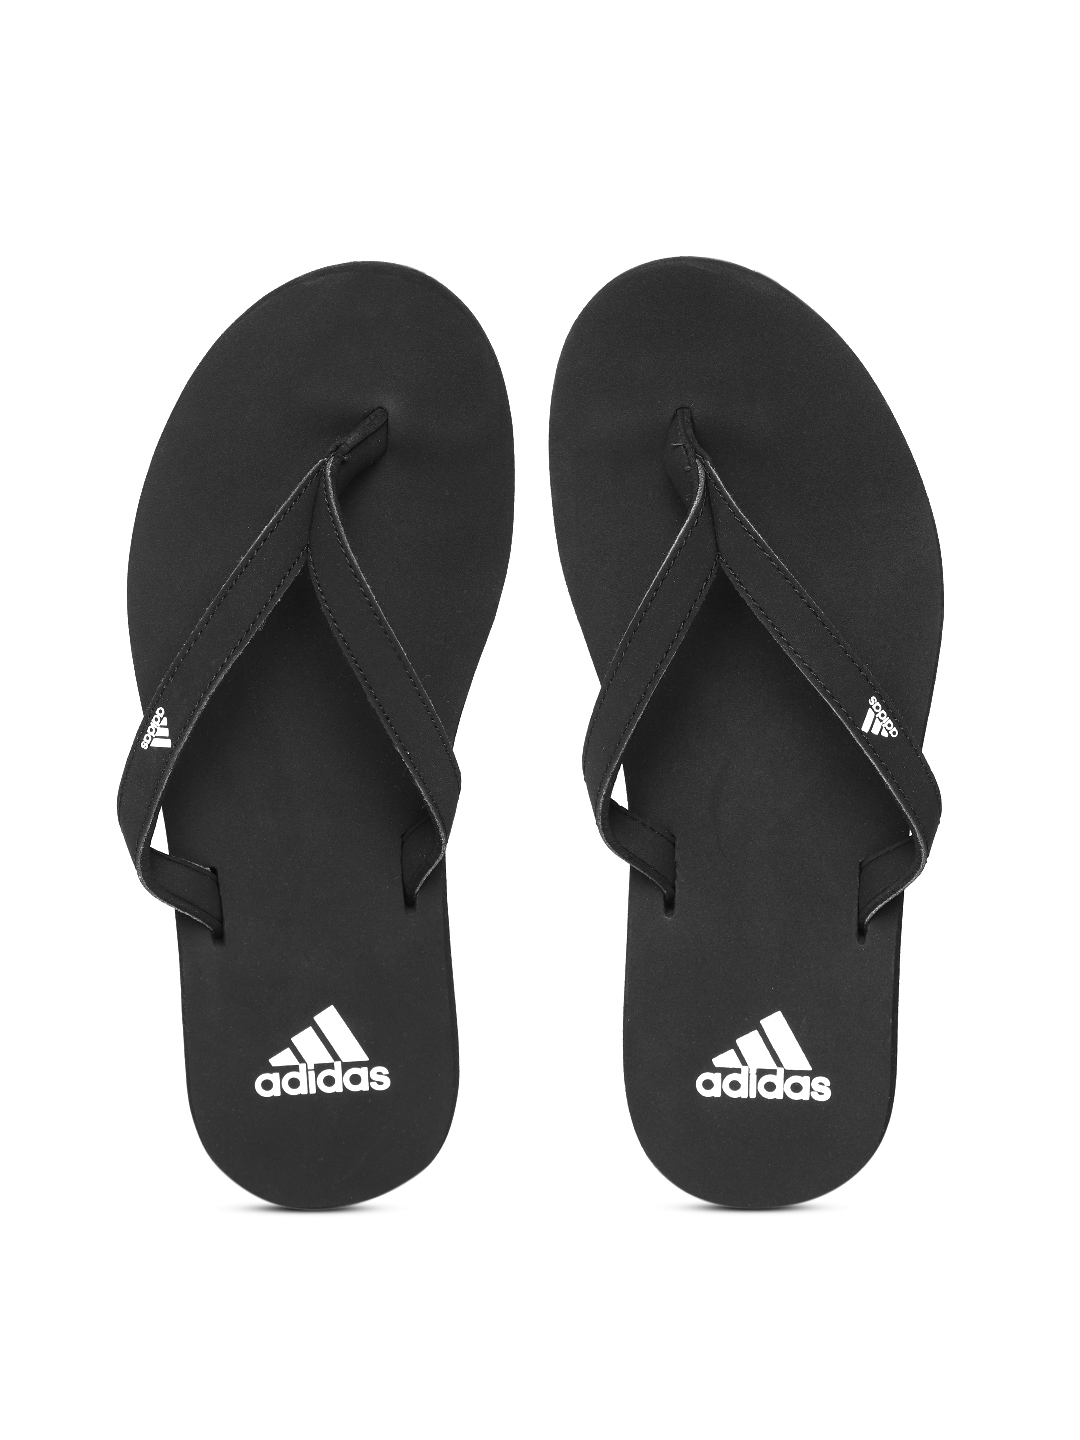 low priced c9cd3 eb6e2 ADIDAS Women Black EEZAY Solid Thong Flip-Flops